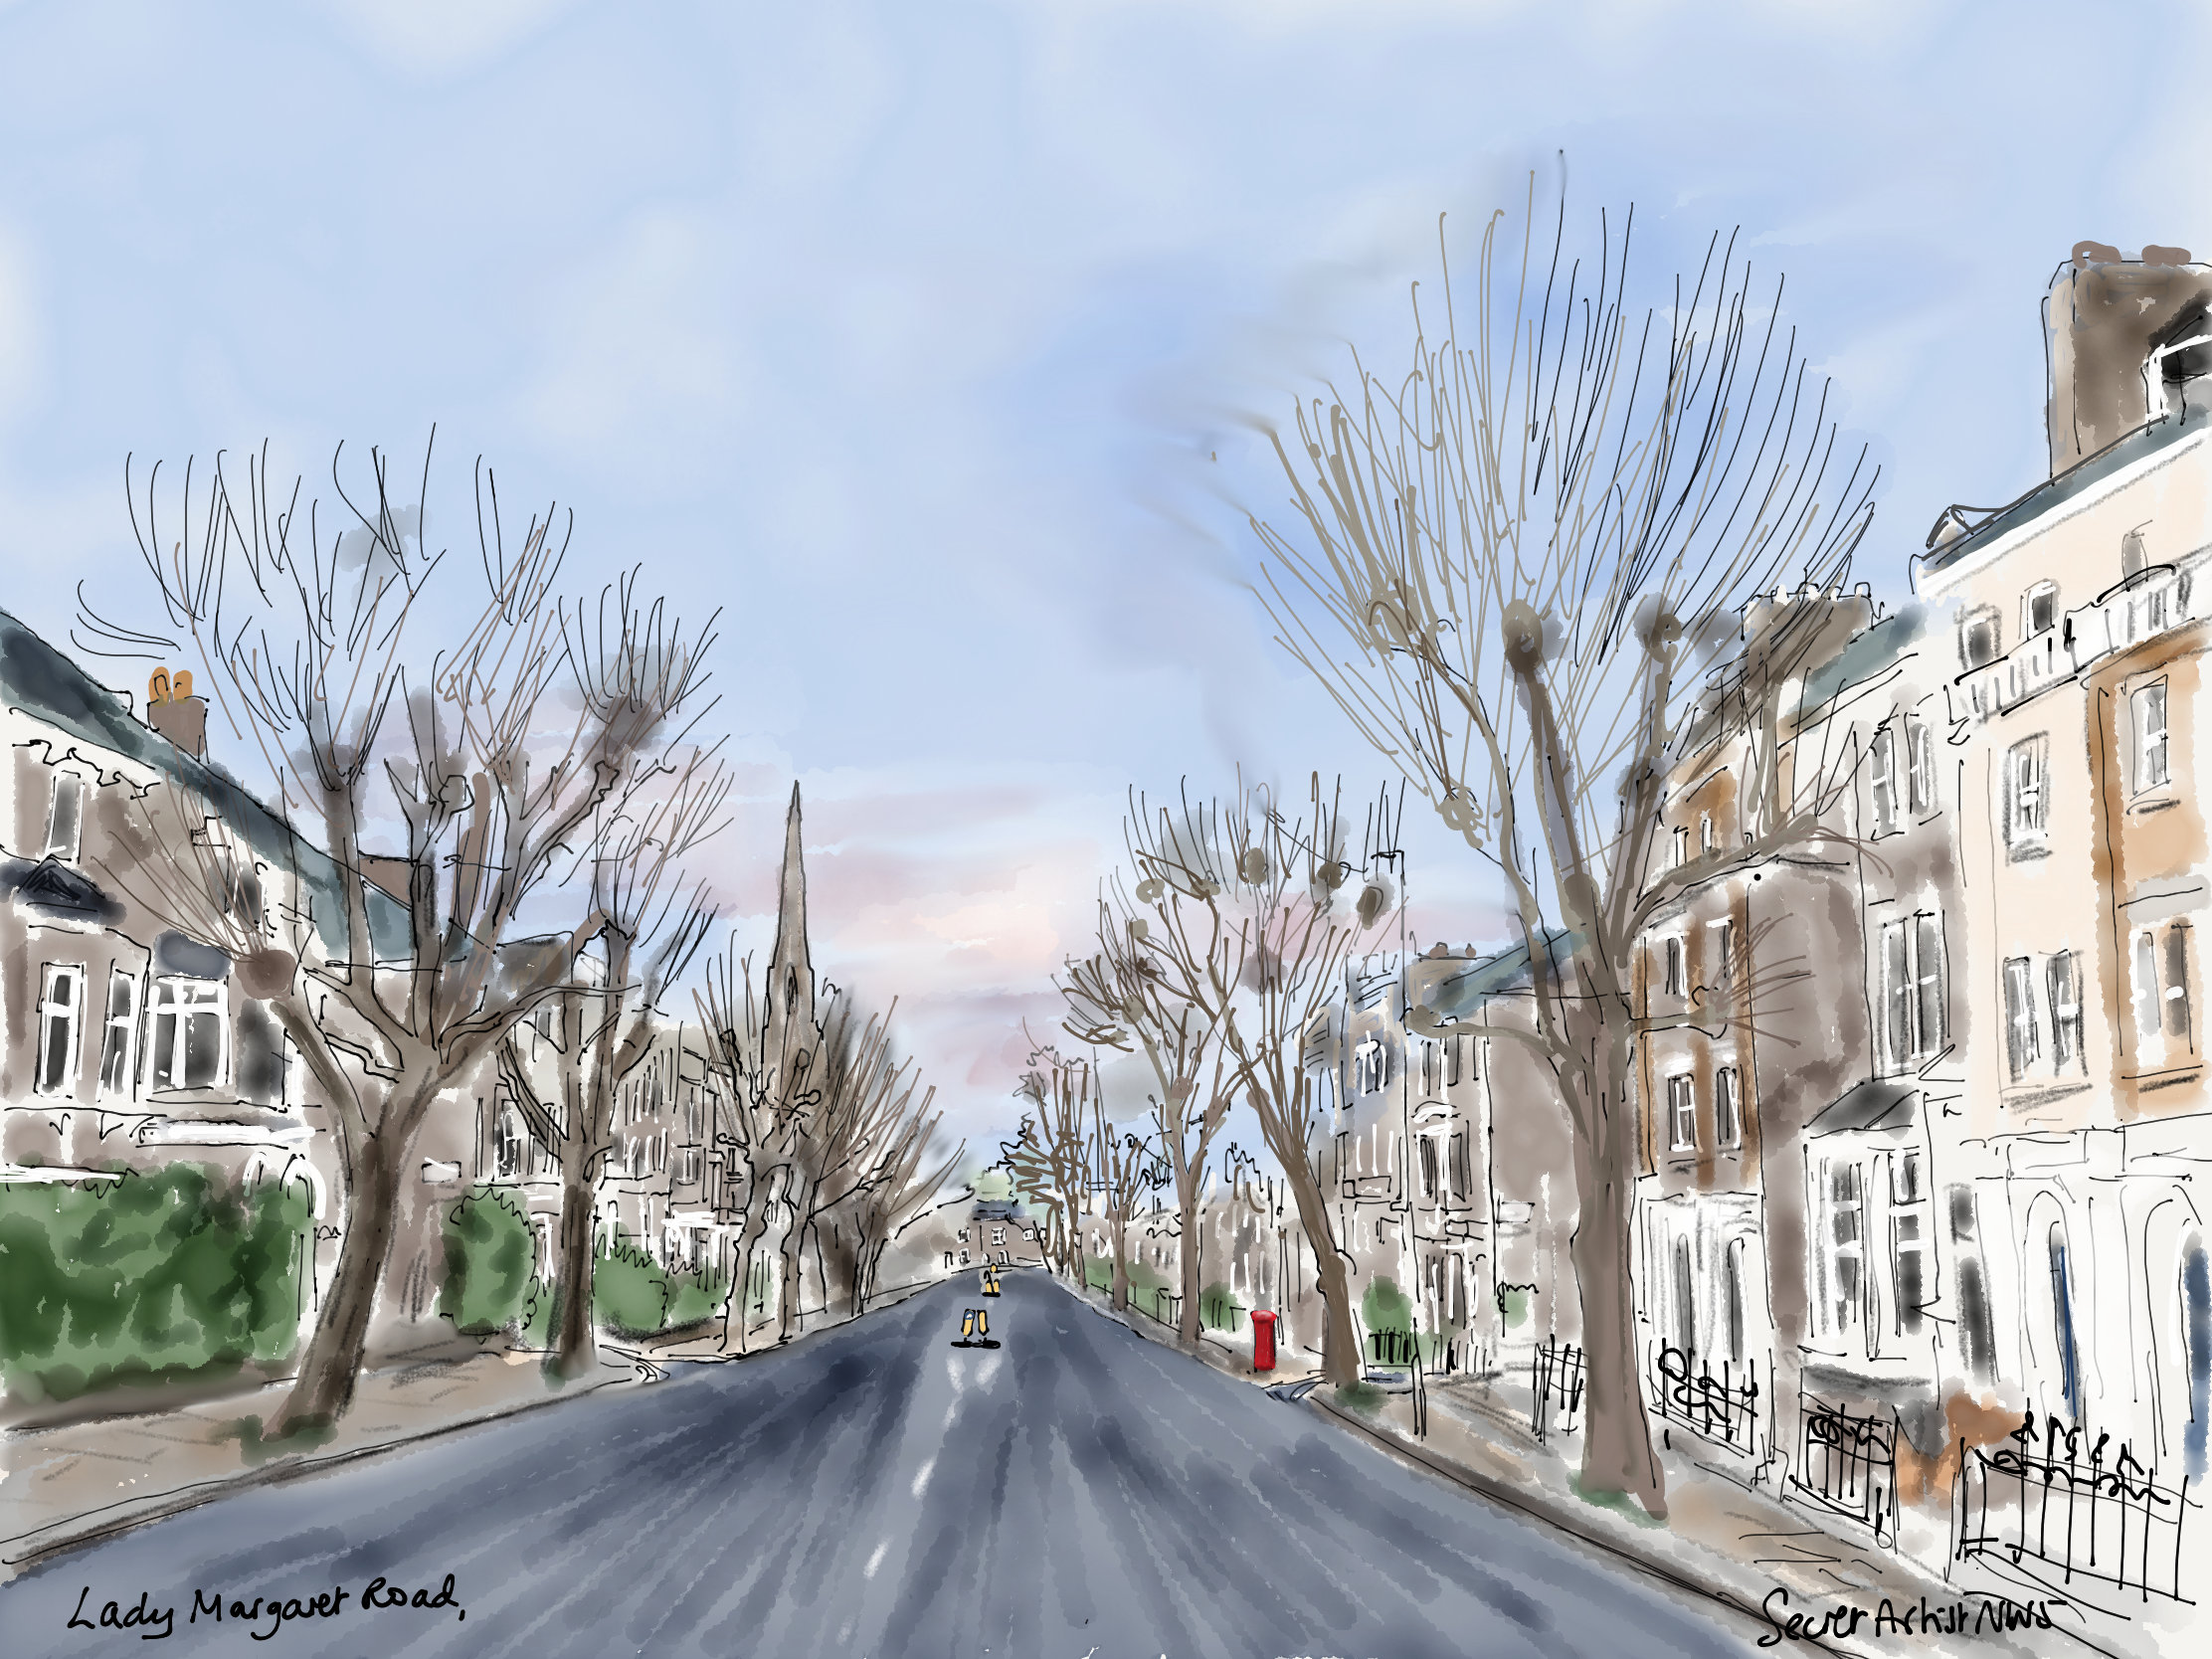 Lady Margaret Road, Dec 2020